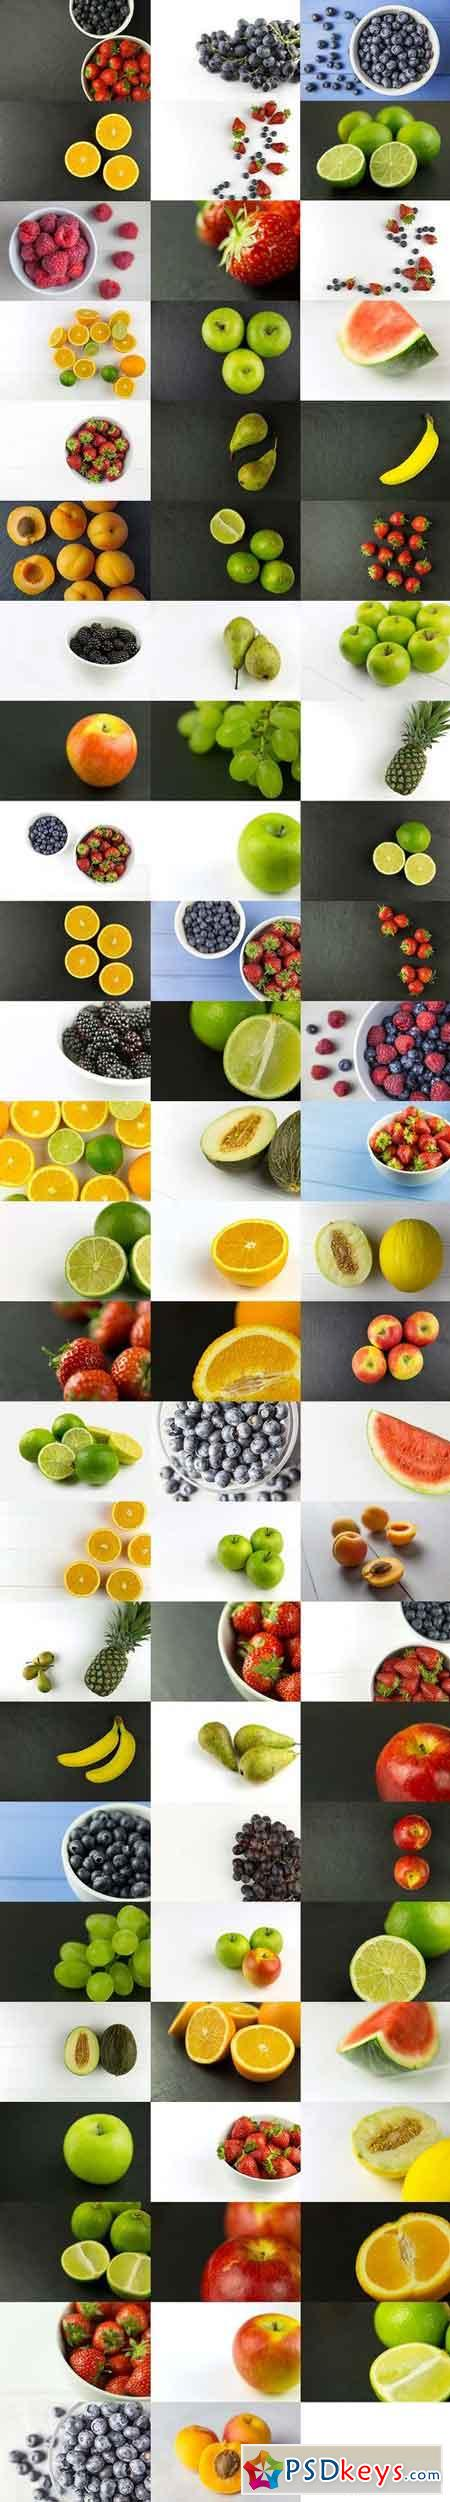 Fruit Photo Pack 567753